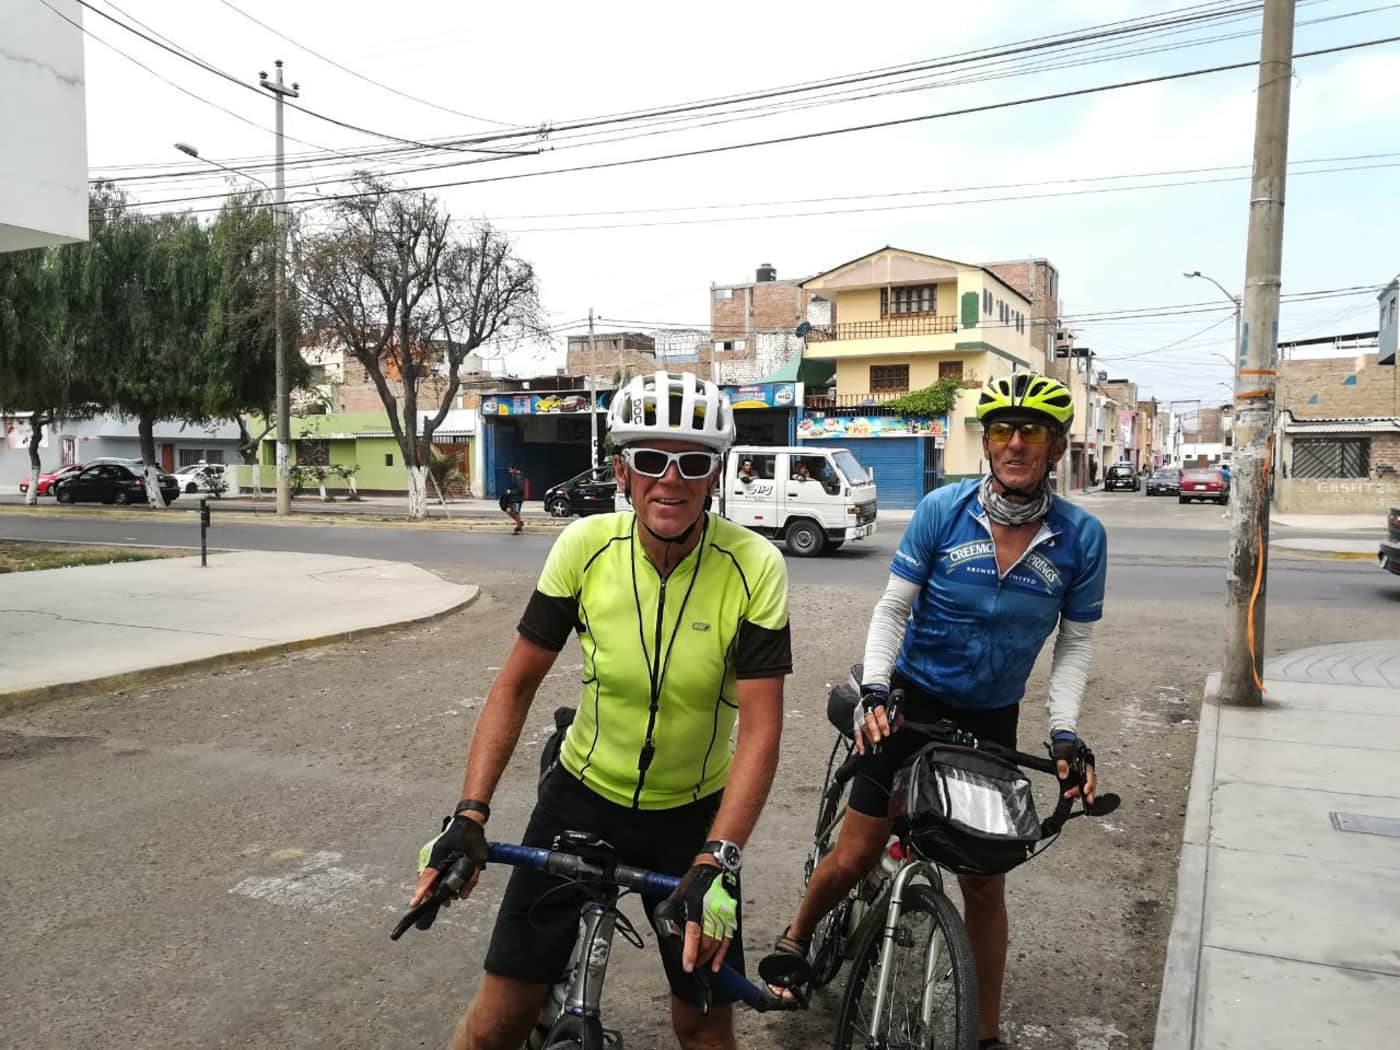 South American Epic | Cross-continent South America bike